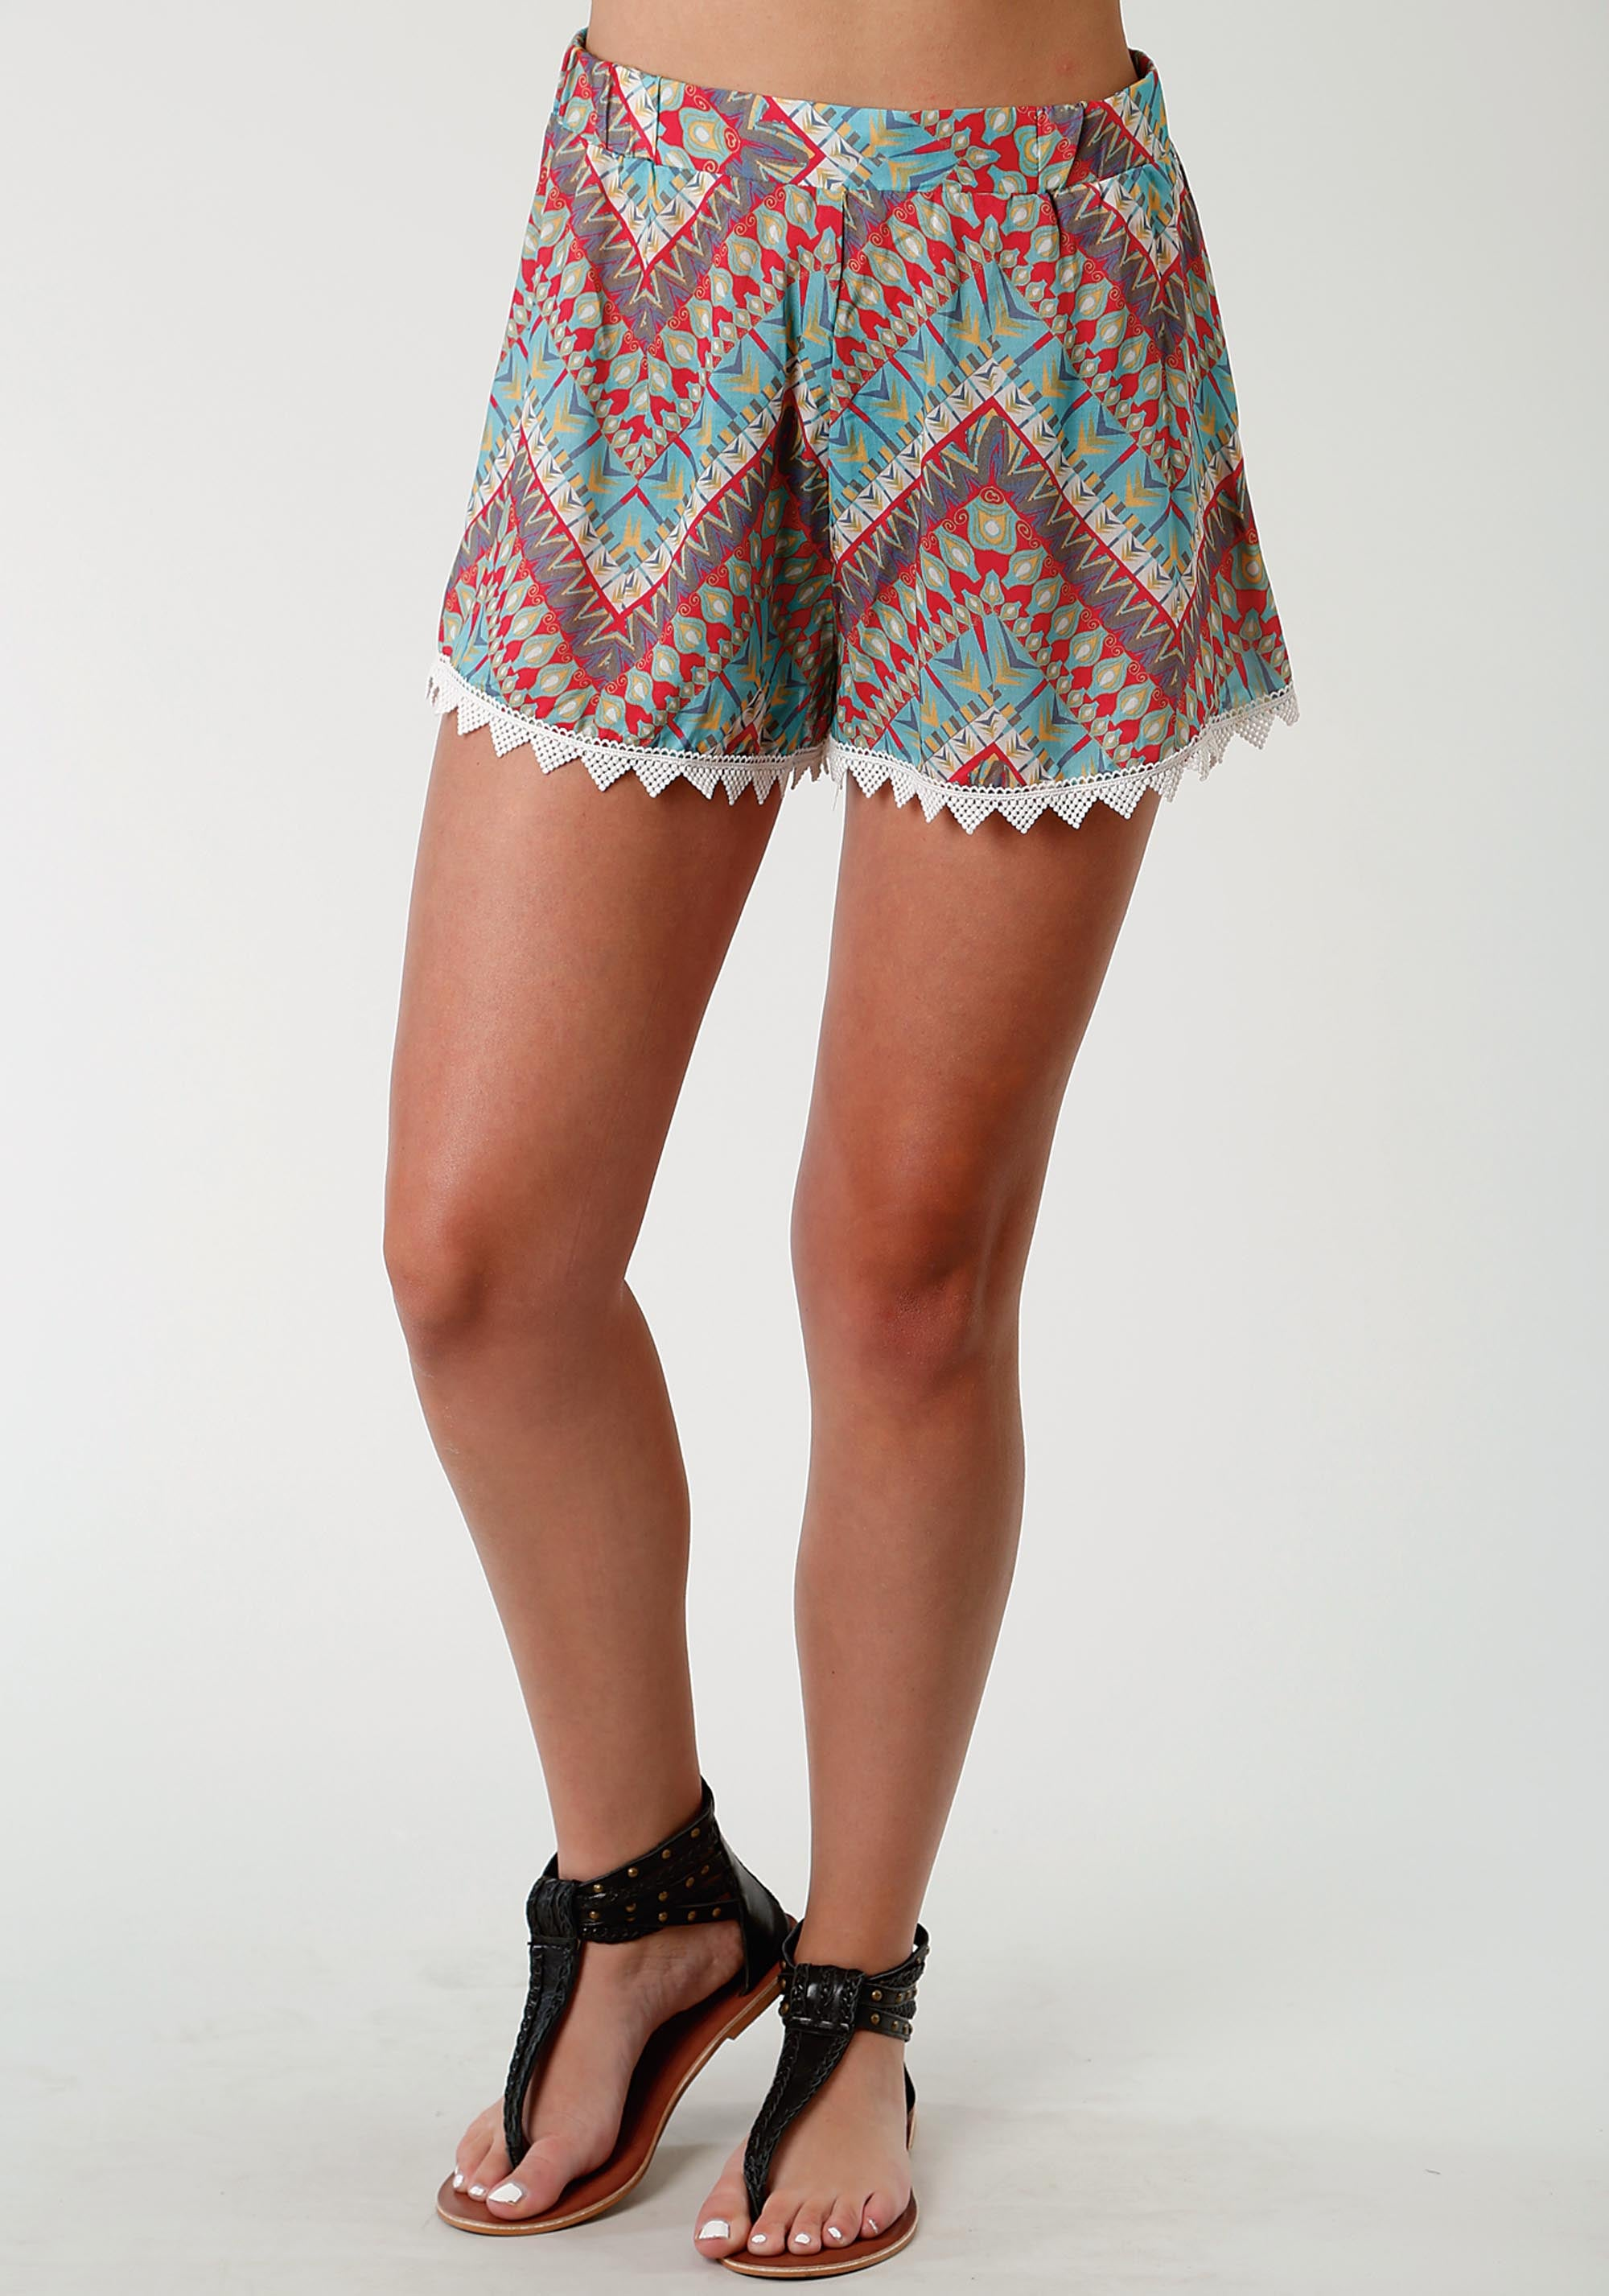 ROPER WOMENS GREEN 1732 AZTEC CHEVRON PRT RAYON LS ROMPER FIVE STAR- SUMMER I SHORTS